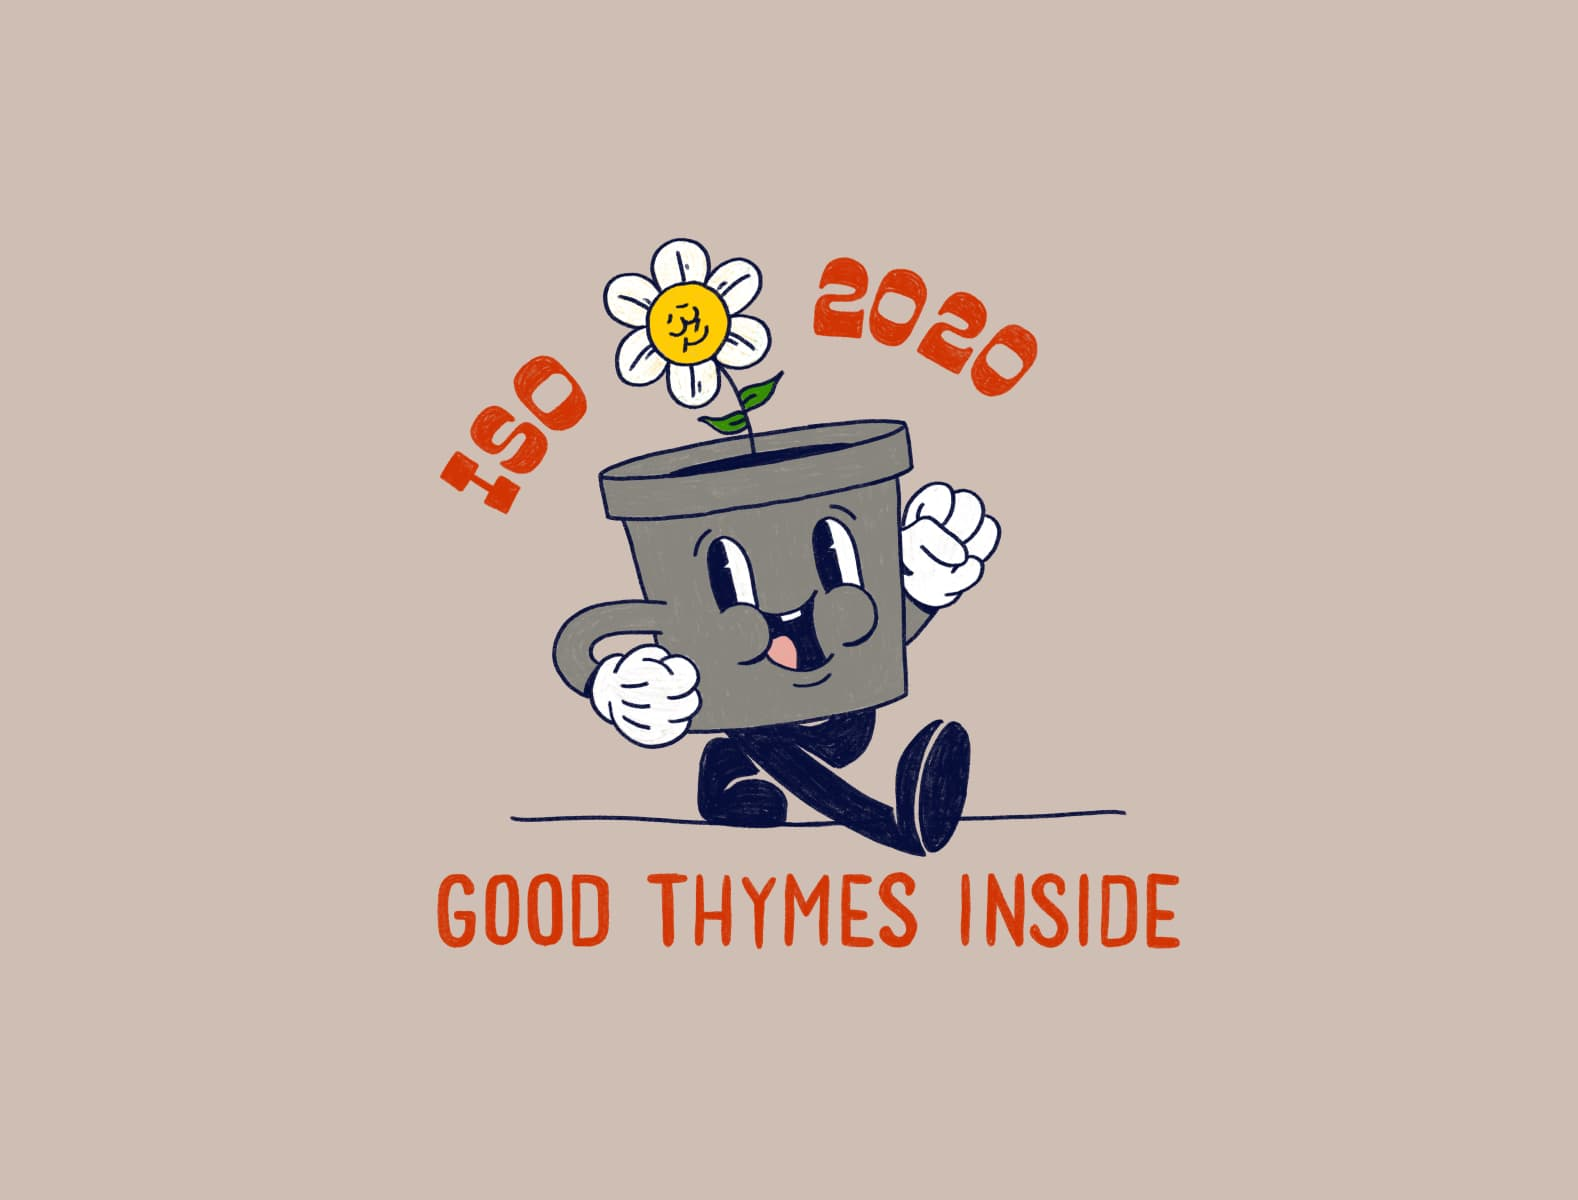 Good Thymes Inside by Sonia Coughlan